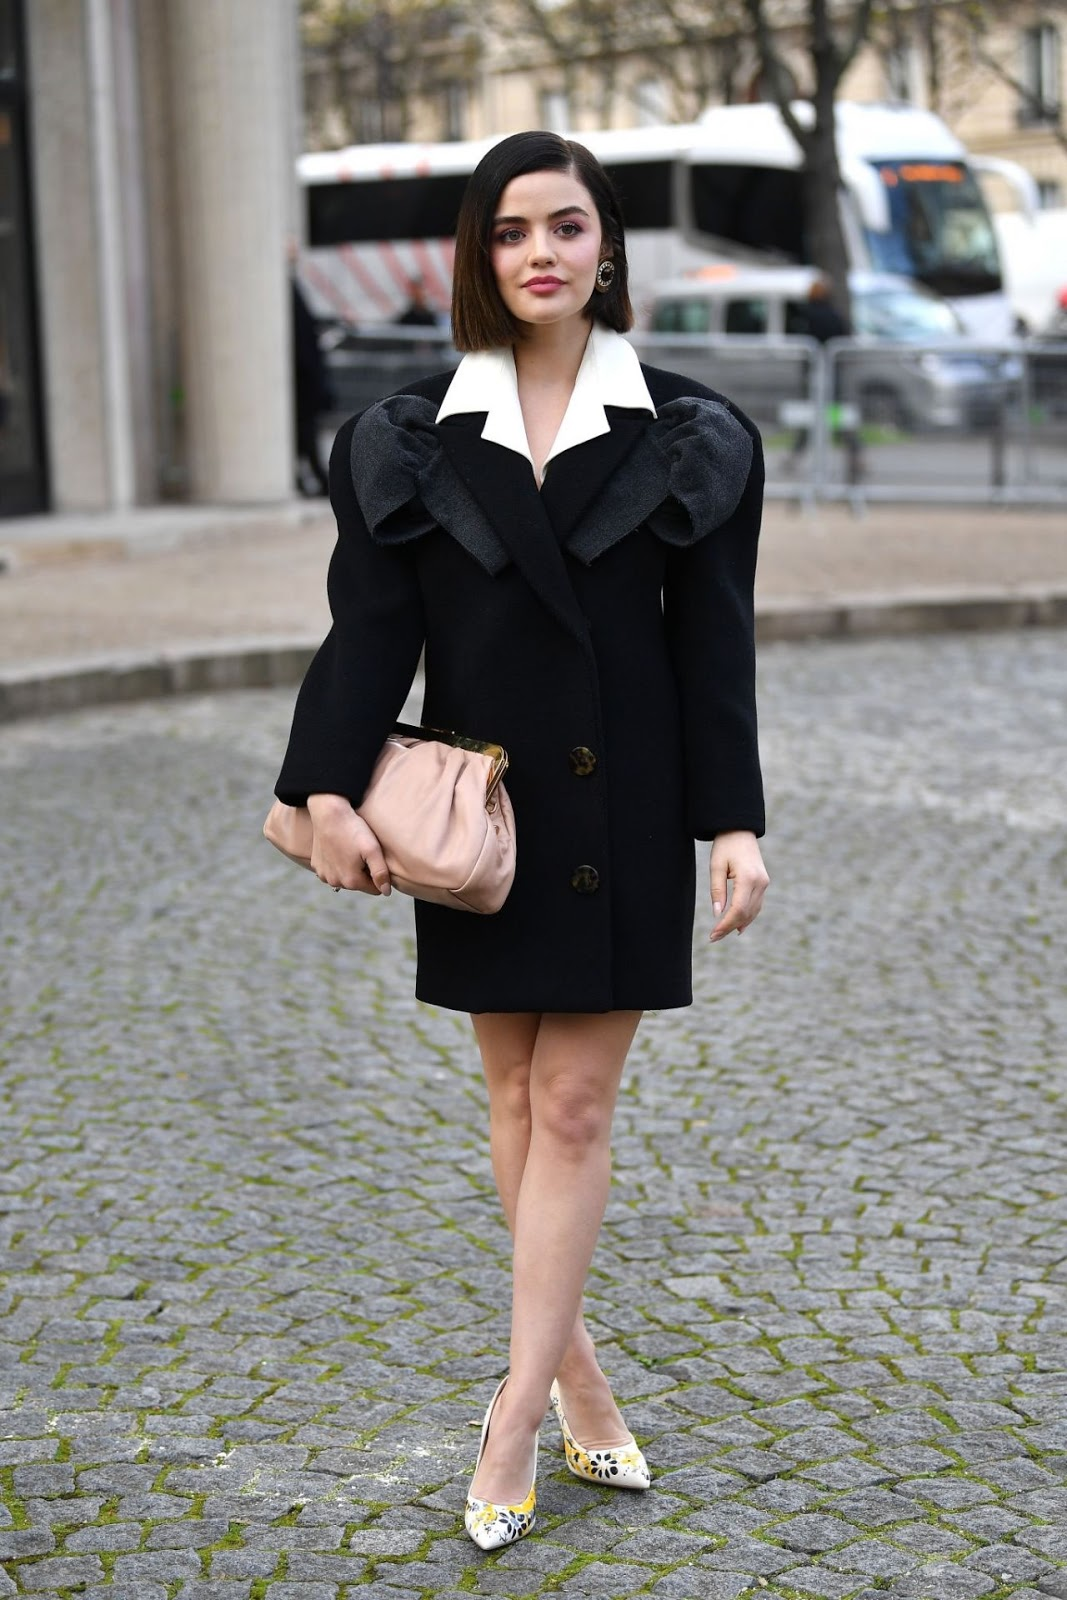 Lucy donned a black long-sleeved blazer dress with a dark grey detail and a large white collar